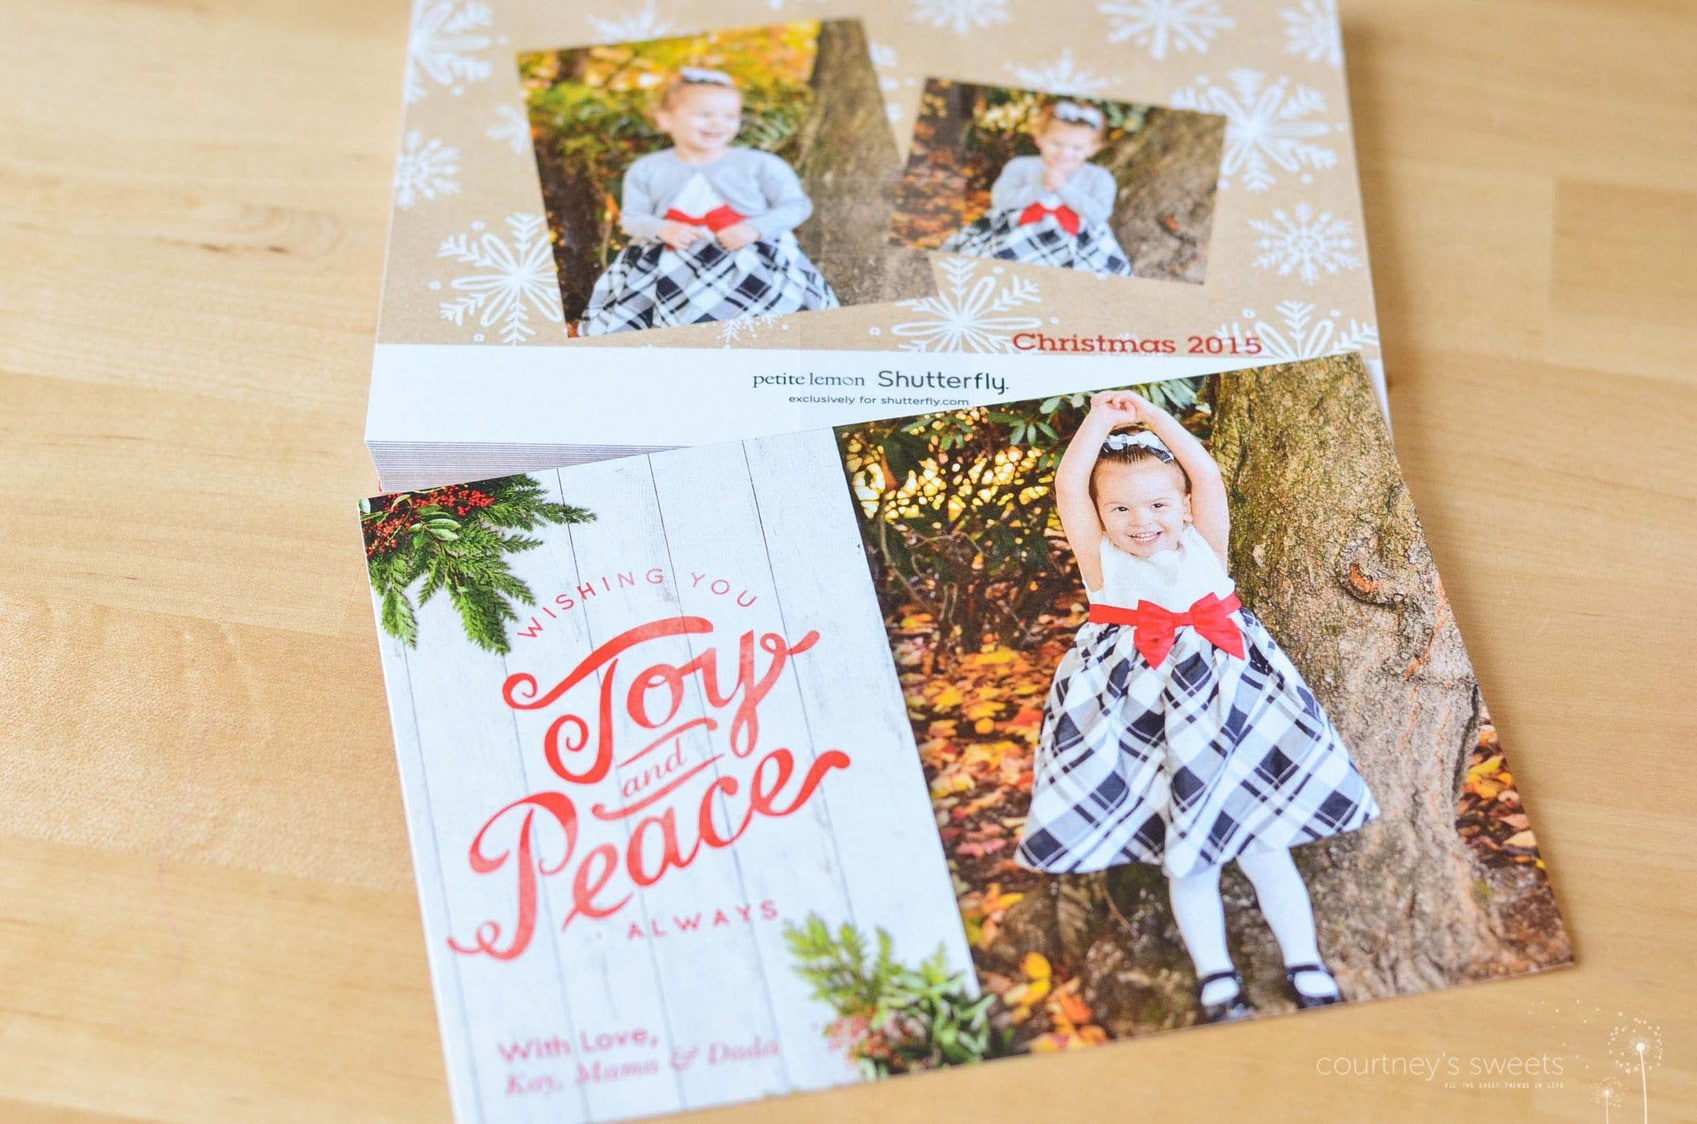 Making Shutterfly Holiday Cards (now en Español) #MiVidaShutterfly